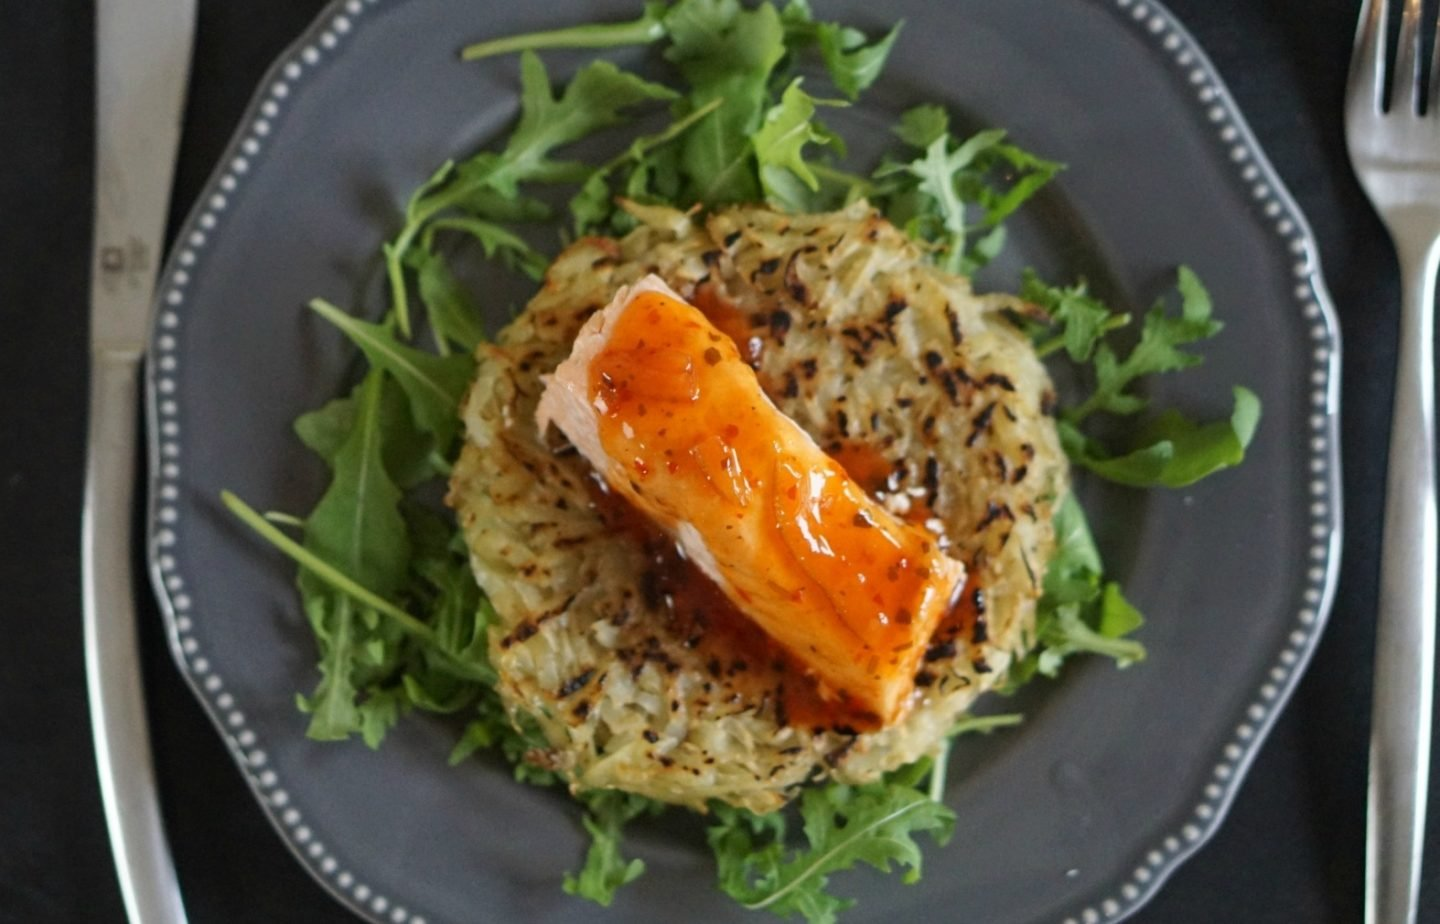 Salmon and hash brown on a bed of rocket www.extraordinarychaos.com